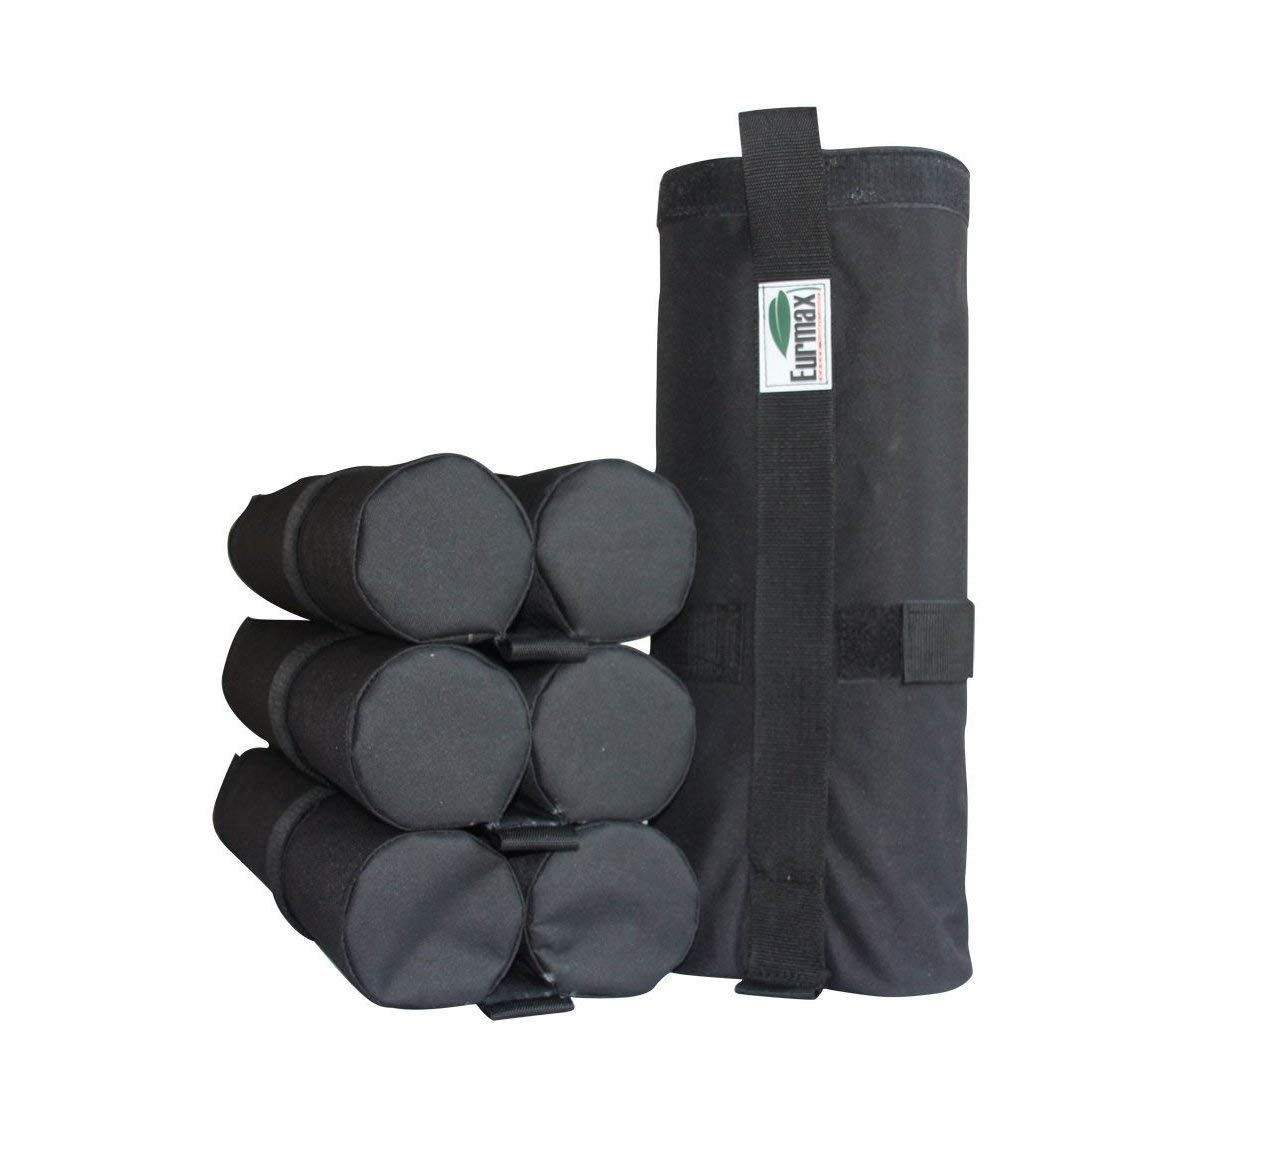 Eurmax Weight Bags for Pop up Canopy Outdoor Shelter,Instant shelter Leg Canopy Weights, Sand Bags, Set of 4 by Eurmax